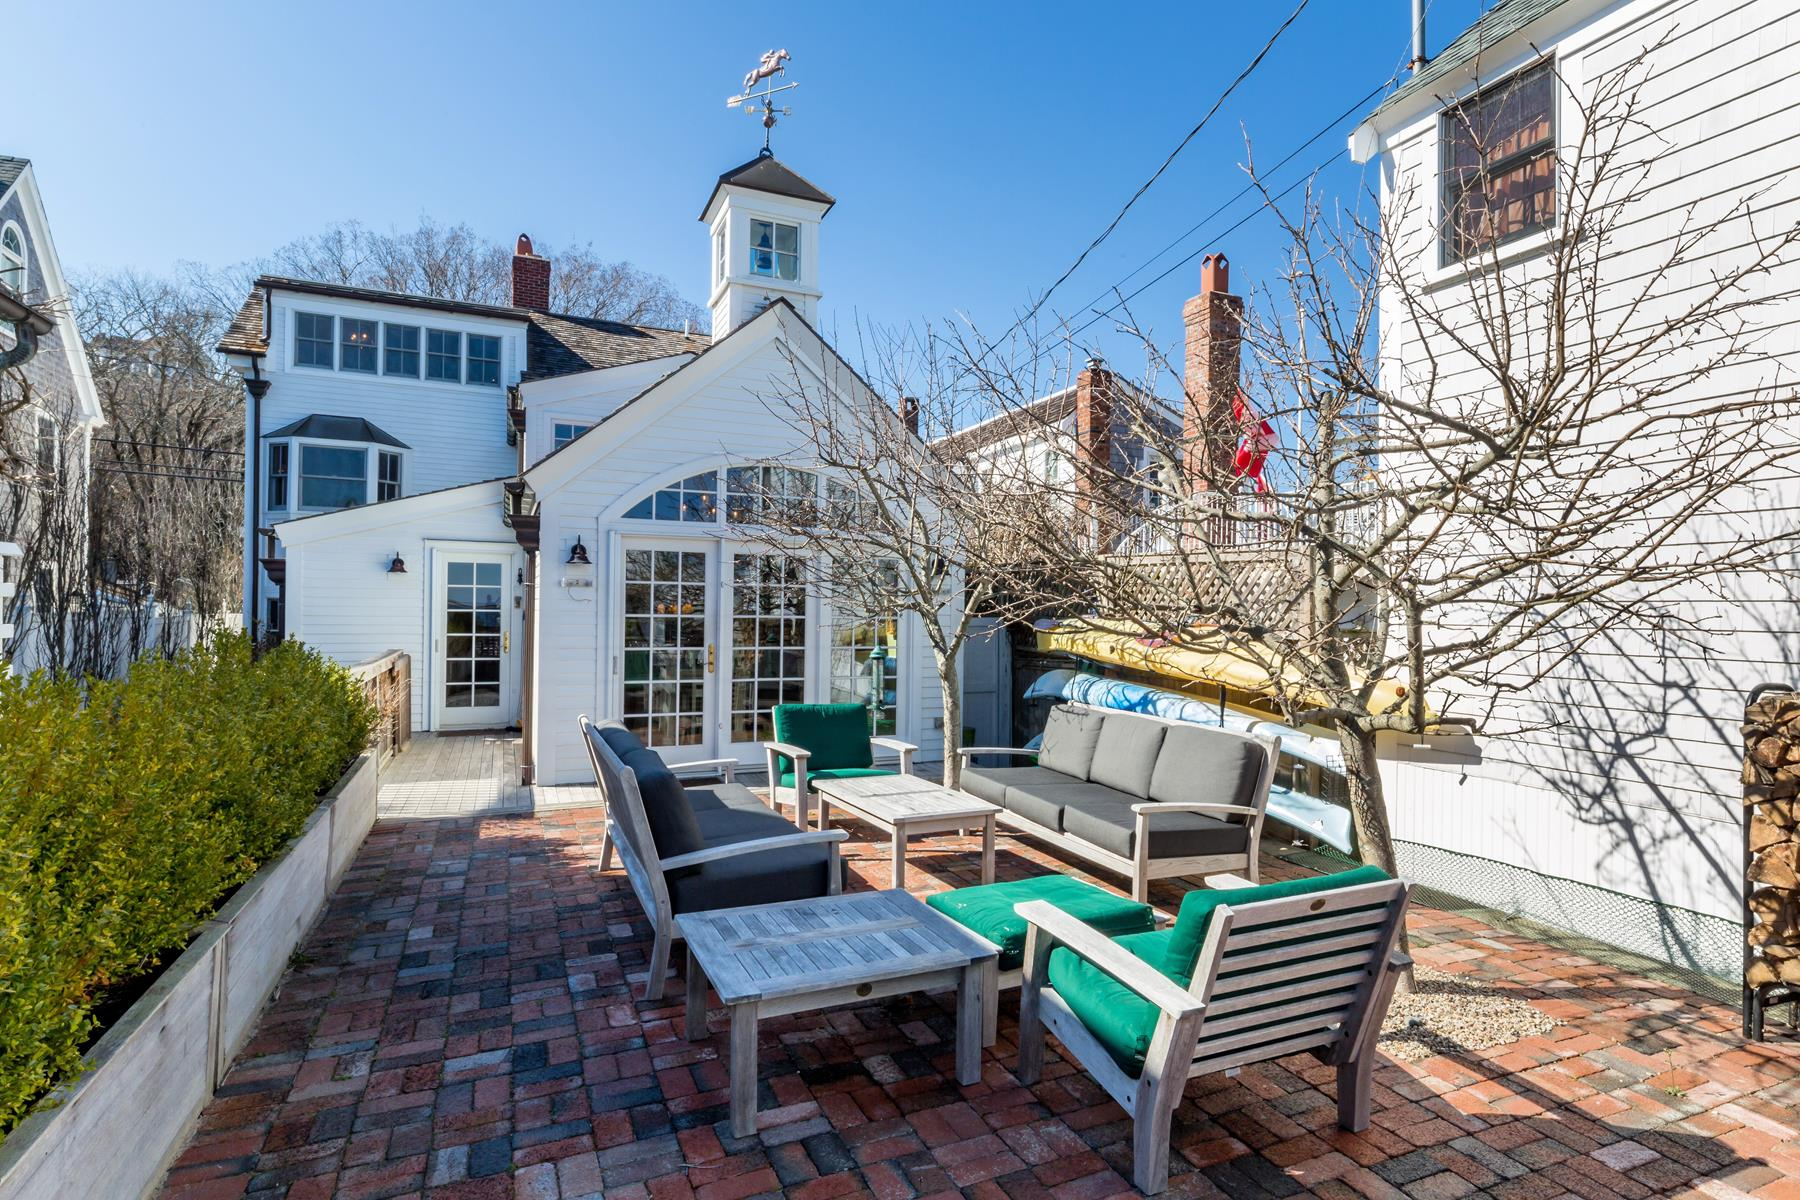 Condominium for Sale at West End Waterfront 47 Commercial Street, Unit A Provincetown, Massachusetts, 02657 United States